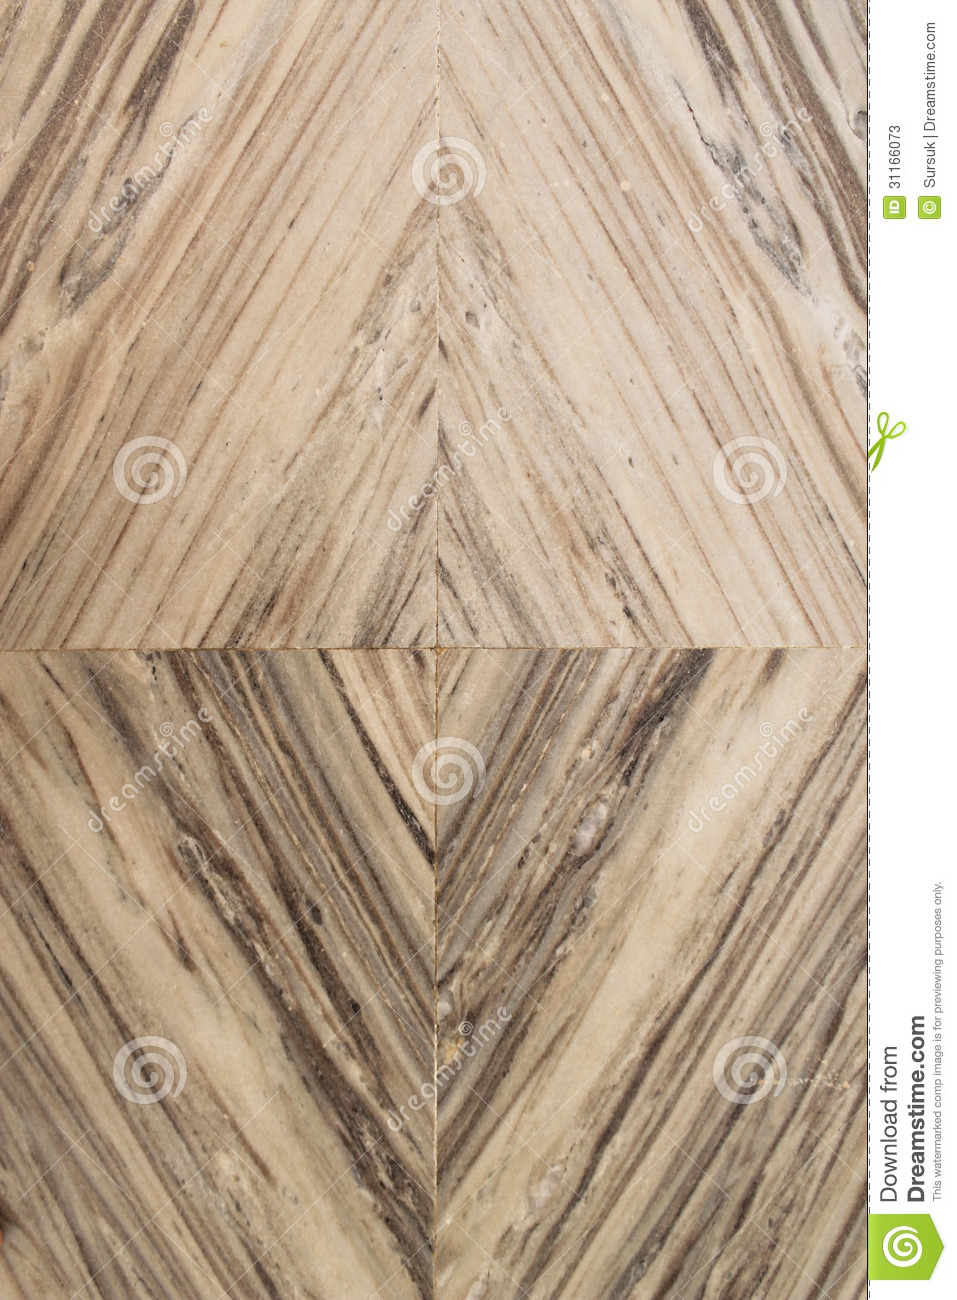 Abstract Design On Marble Floor Stock Photos - Image: 31166073